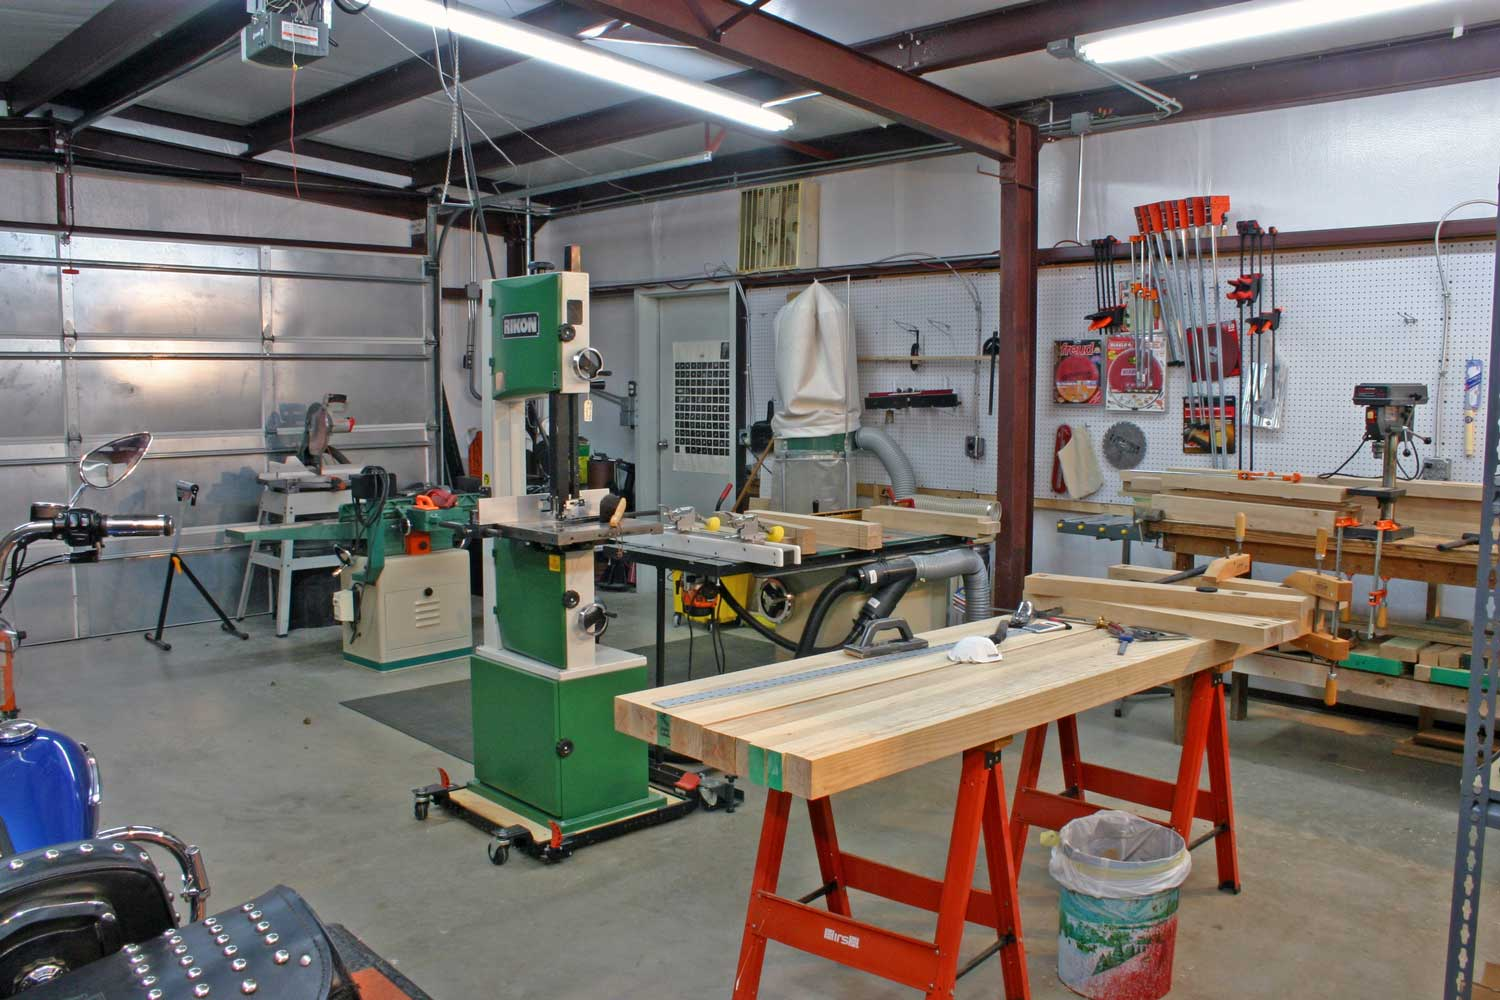 Woodshop Workshop garage plans